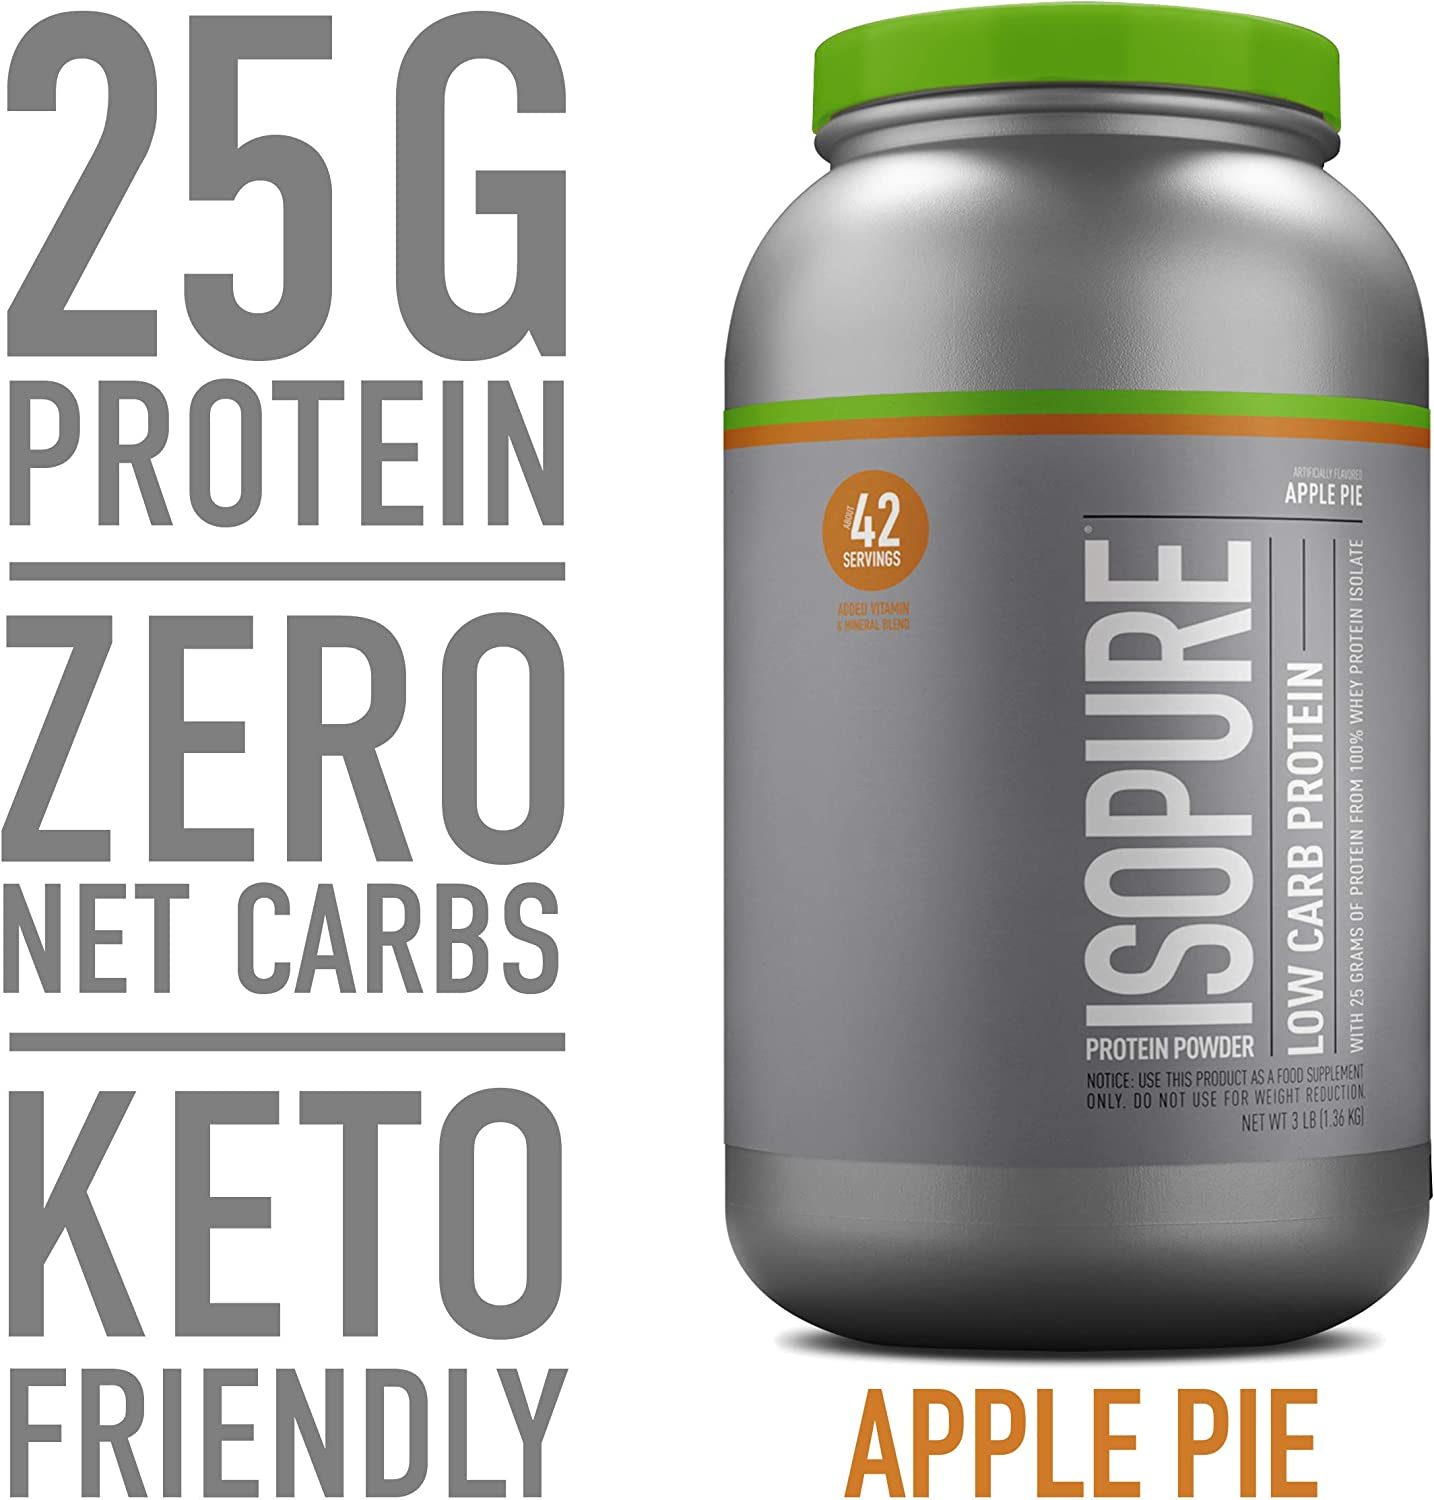 Isopure Low Carb, Keto Friendly Protein Powder, 100% Whey Protein Isolate, Flavor: Apple Pie, 3 Pounds (Packaging May Vary)